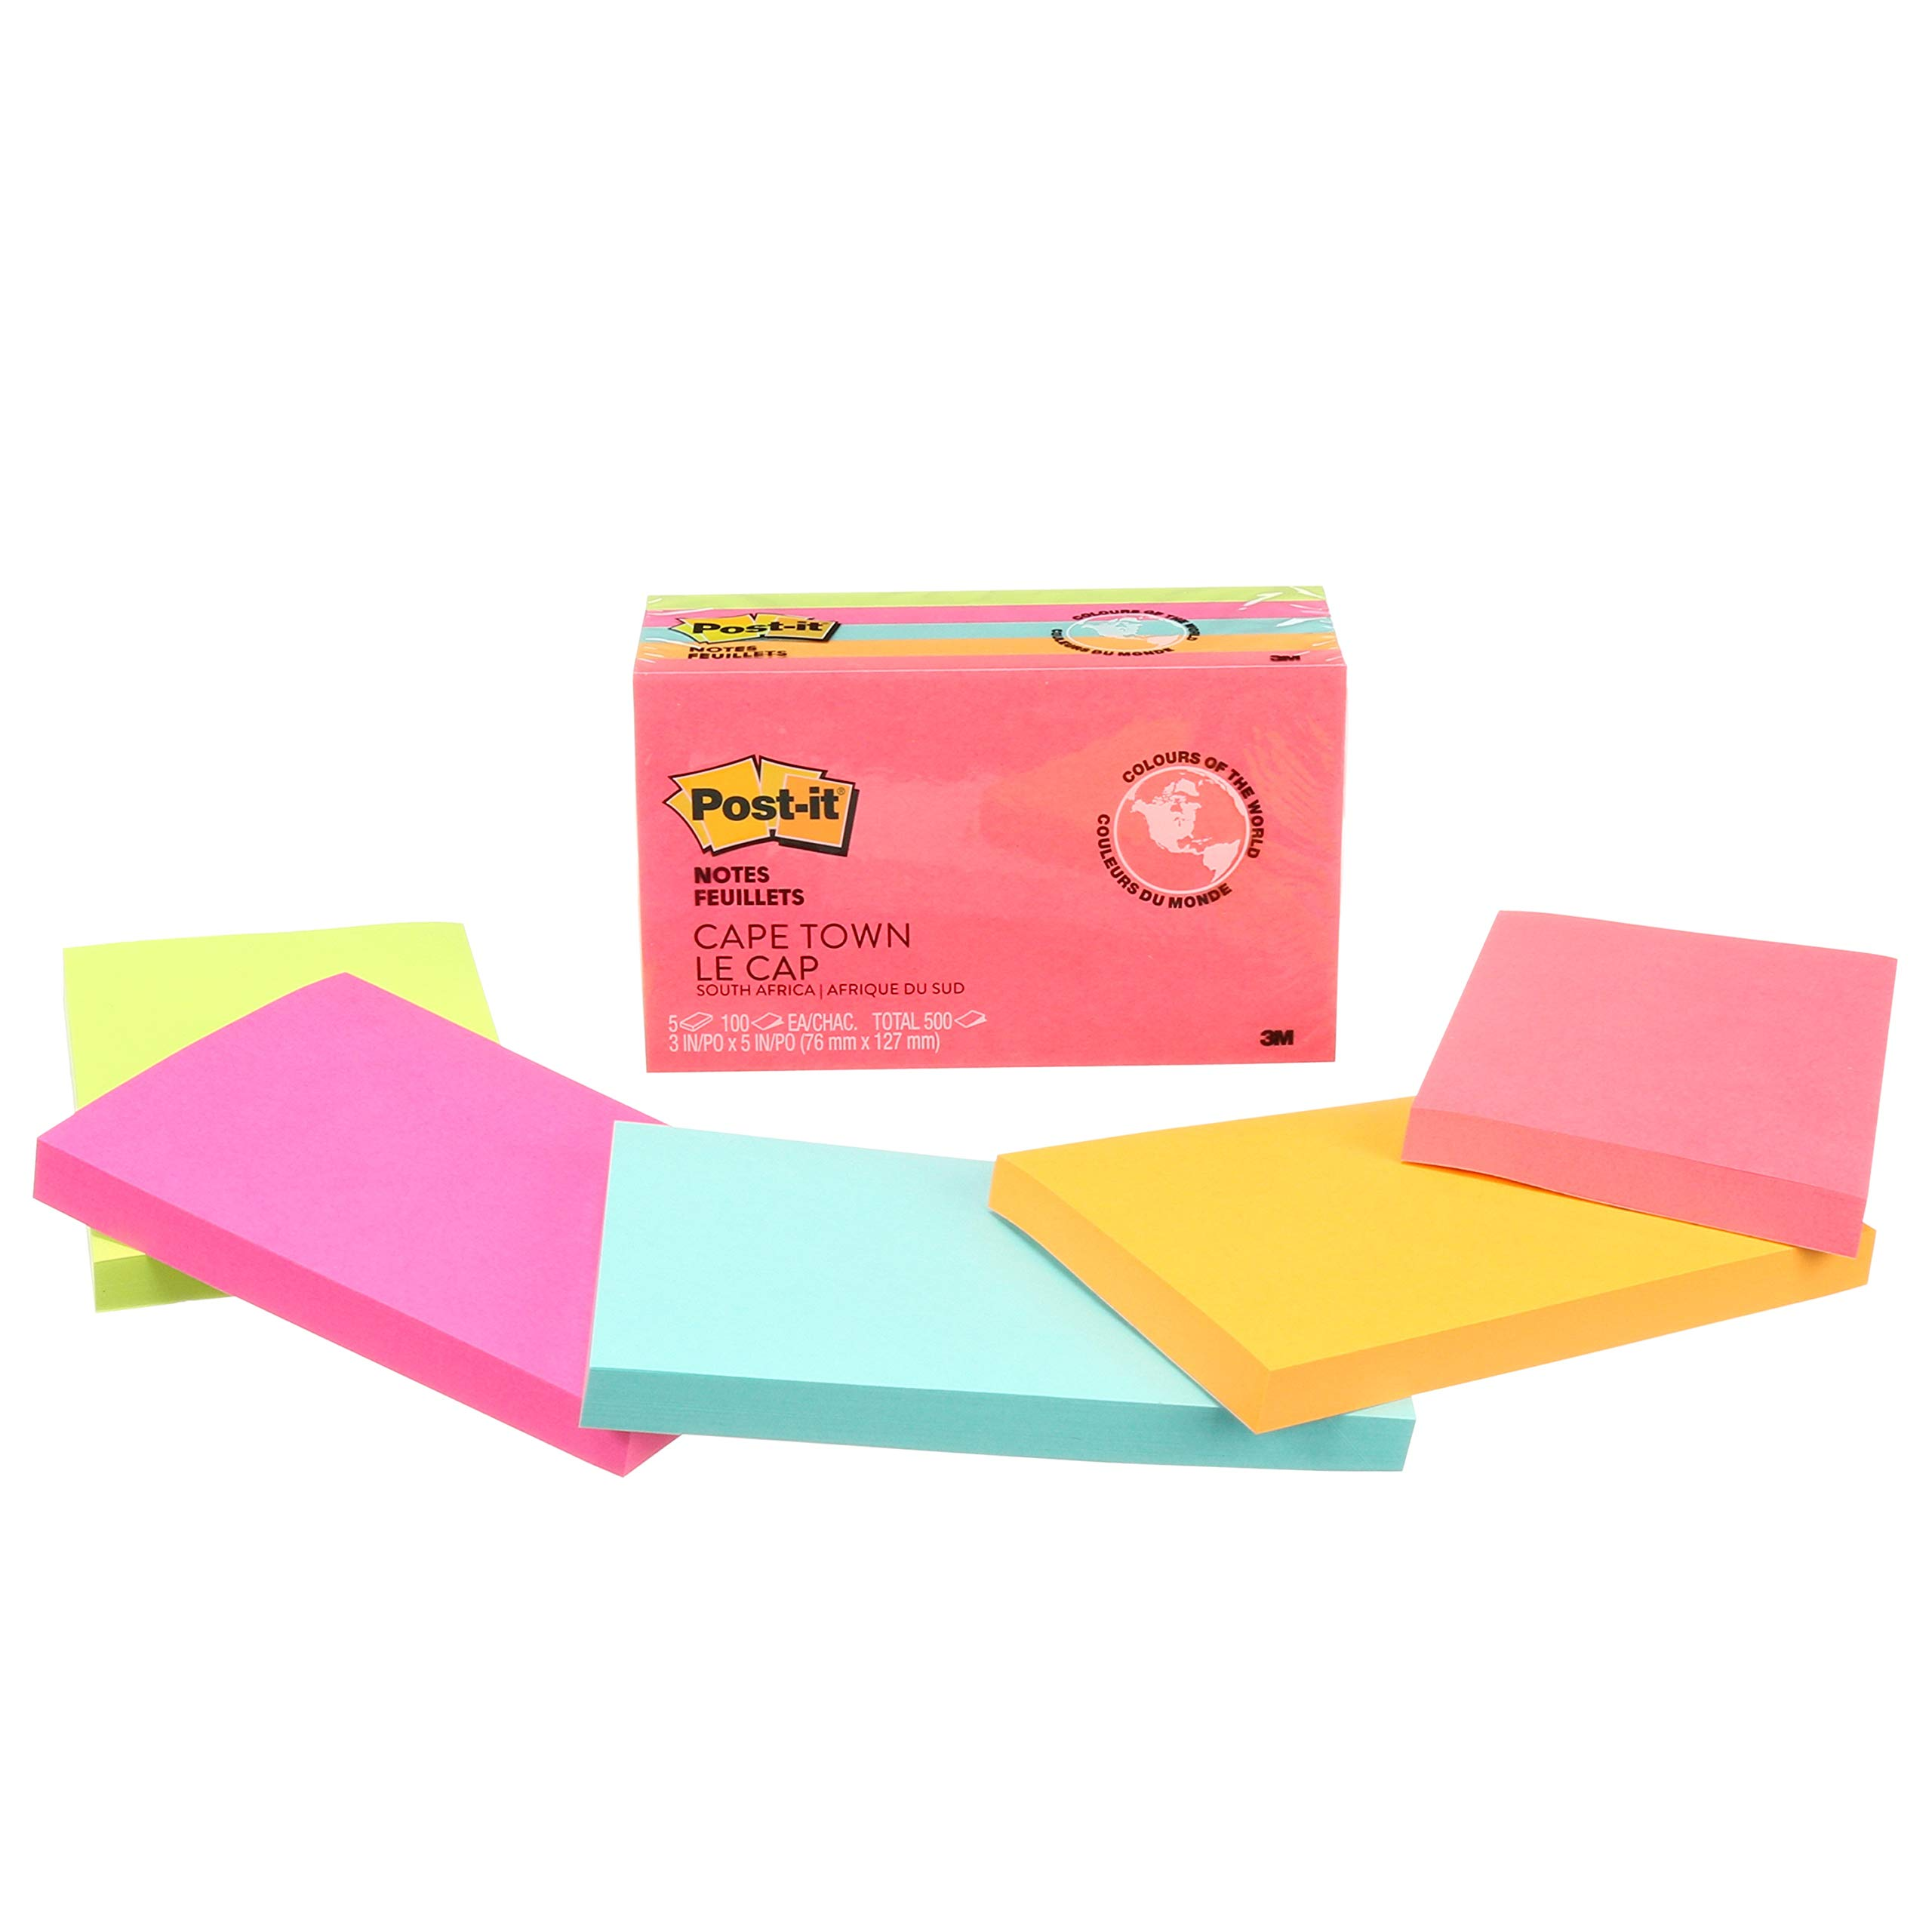 Post-it Notes 6555PK Original Pads in Cape Town Colors, 3 x 5, 100-Sheet (Pack of 5) - 655-5PK by Post-it